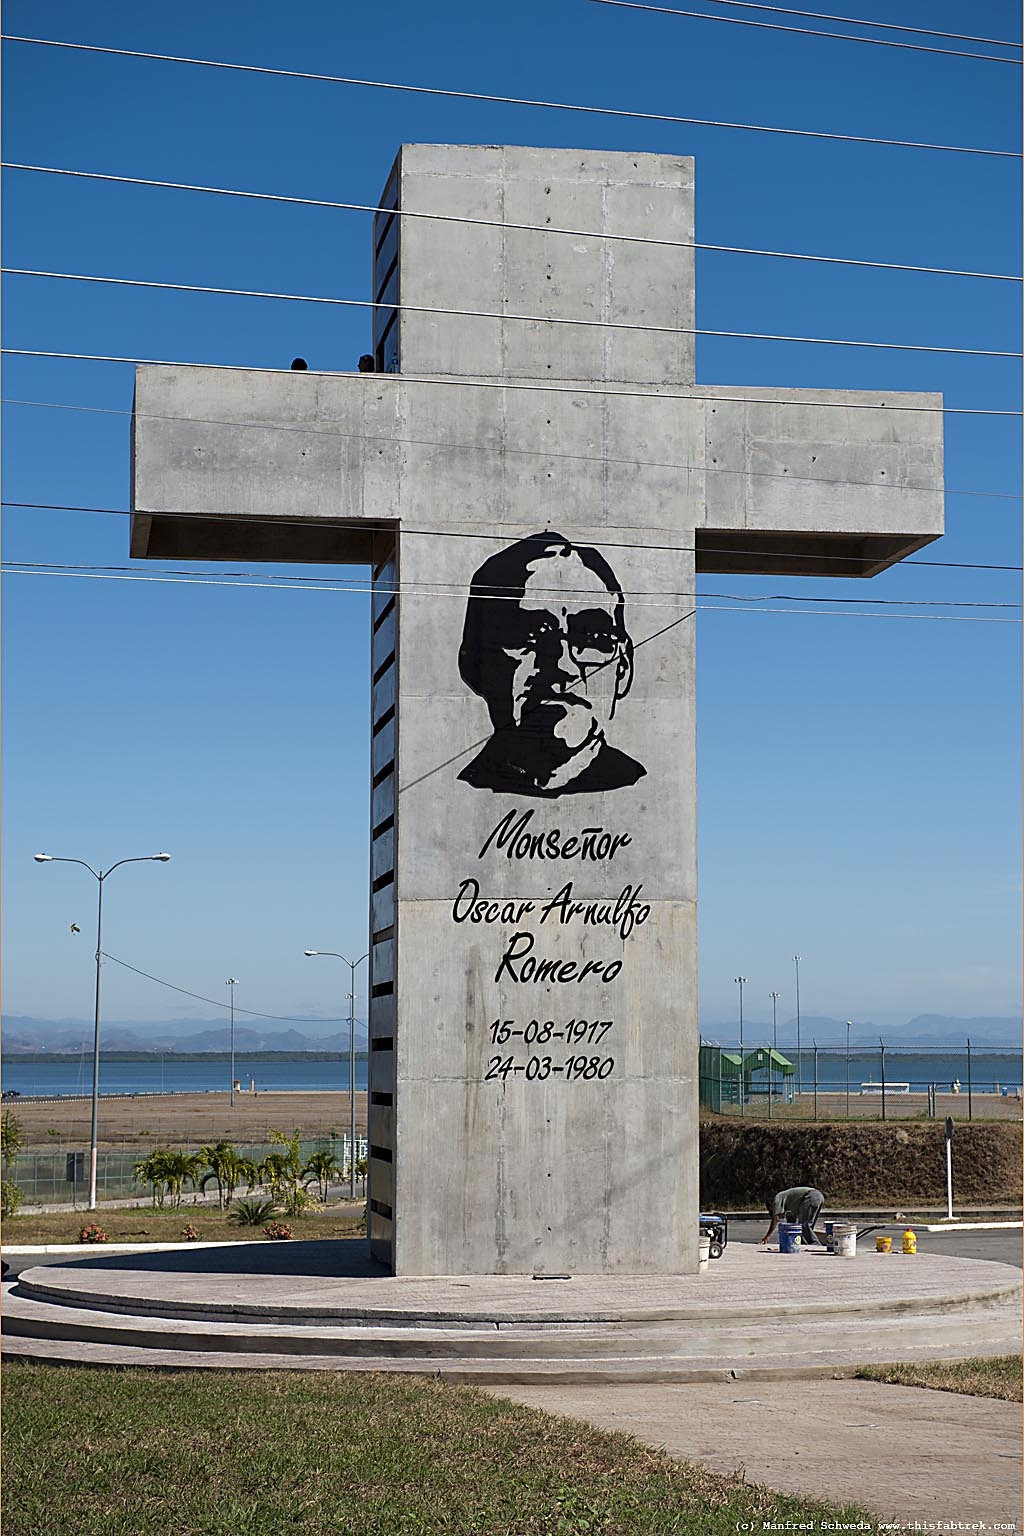 Best Love Quotes And Sayings moreover Monsenor The Last Journey Of Oscar Romero besides 20120105 El Mozote as well Viewtopic furthermore 1264. on the last journey of oscar romero